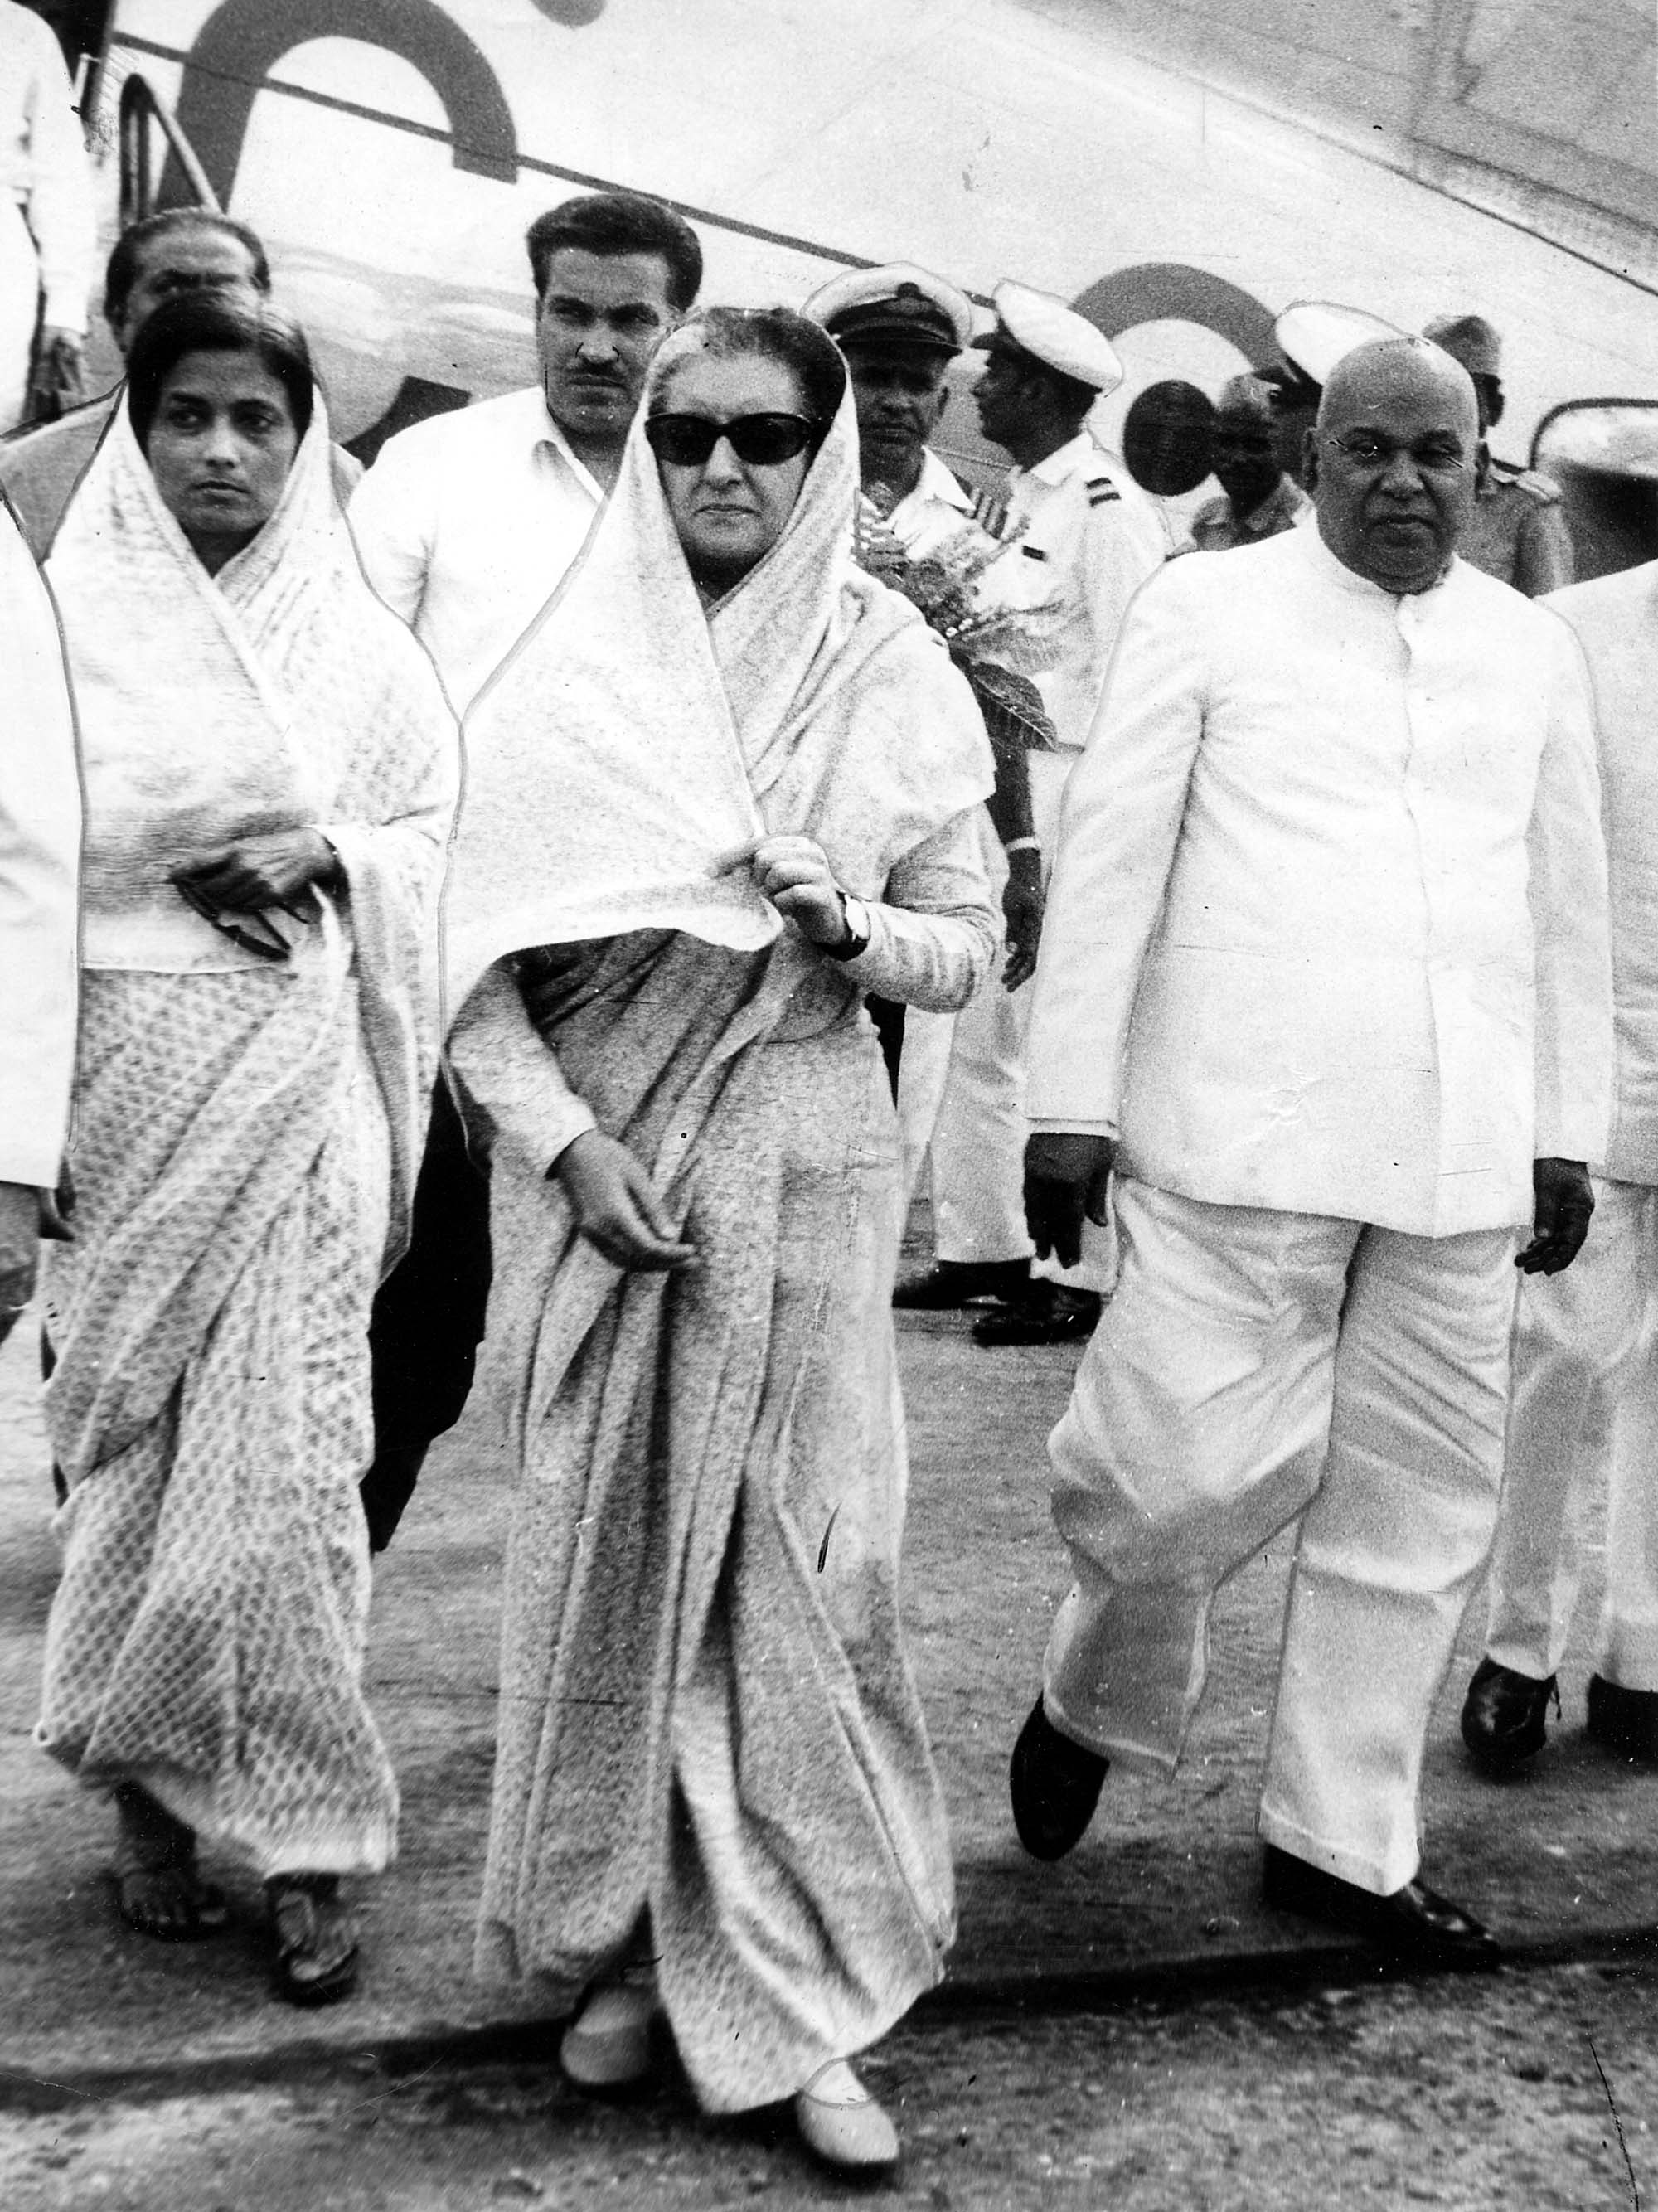 The R&AW owes much to the vision of Indira Gandhi, but in the last decade, it seems to have disregarded her advice.